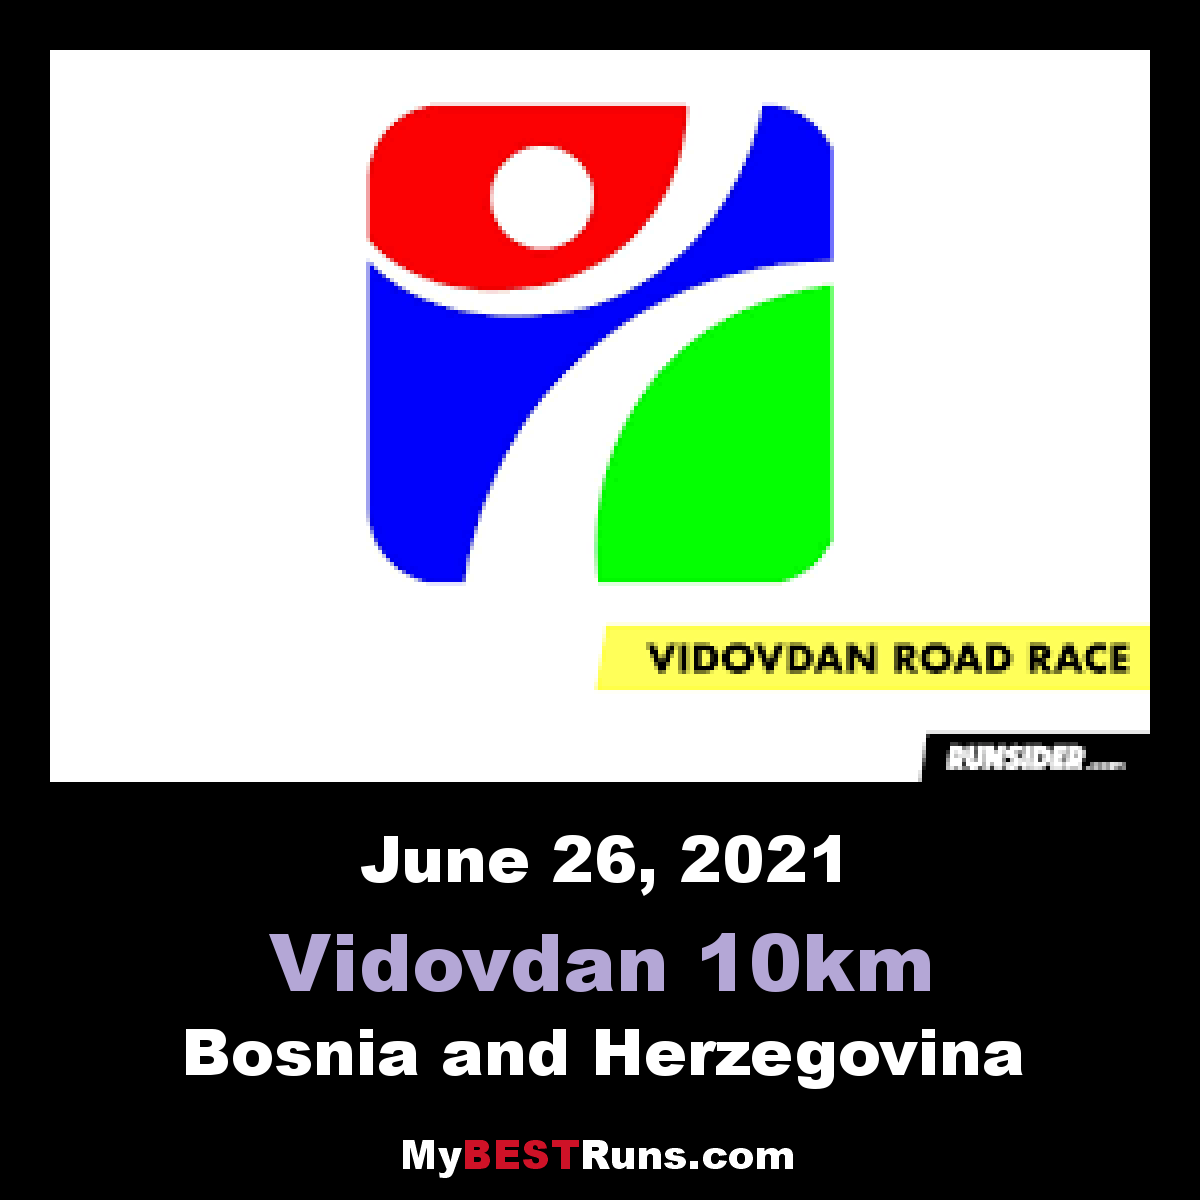 Vidovdan 10km Road Race